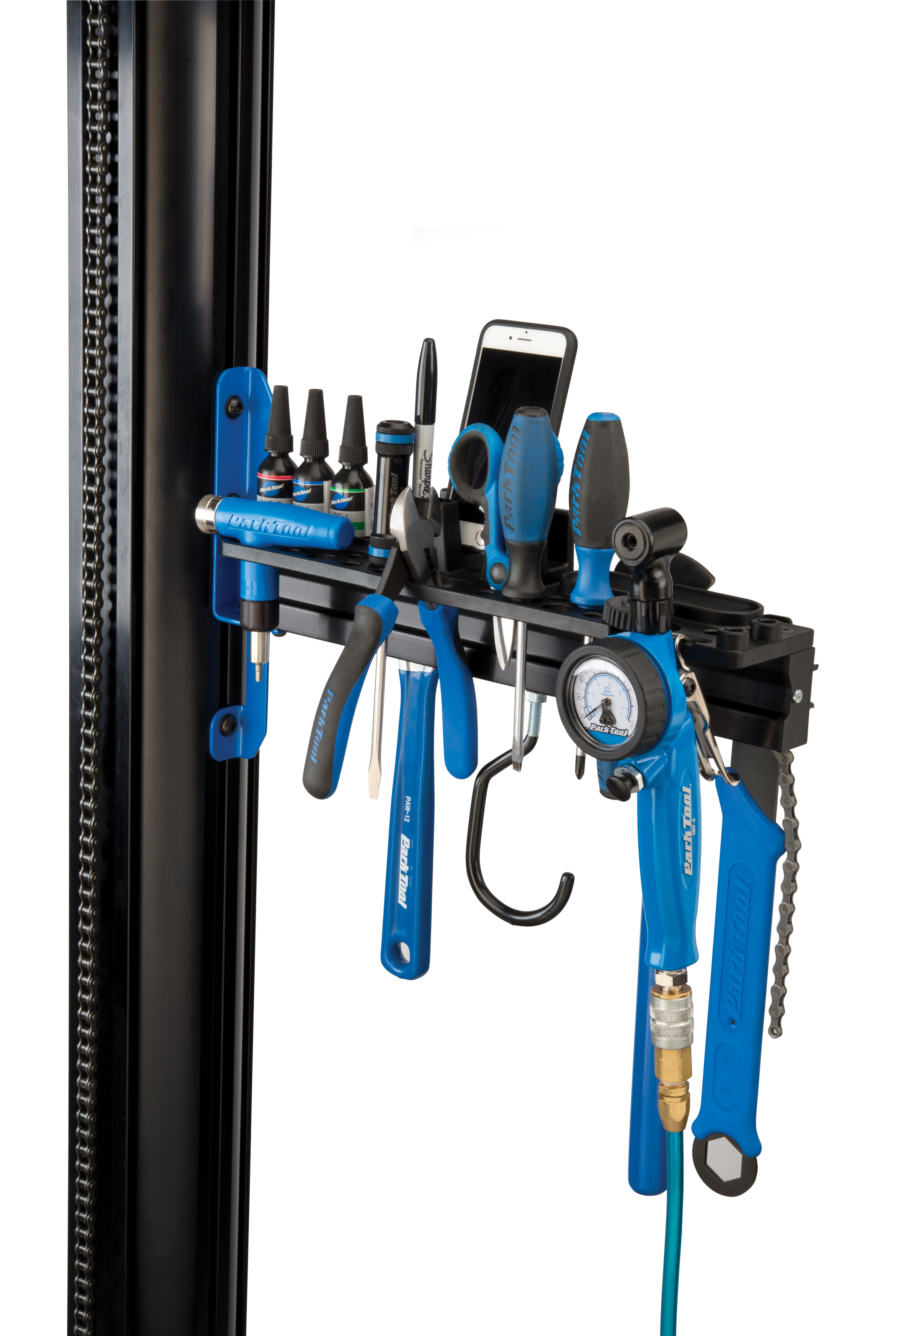 The Park Tool PRS-33TT Deluxe Tool and Work Tray full of tools and a phone attached to repair stand, enlarged